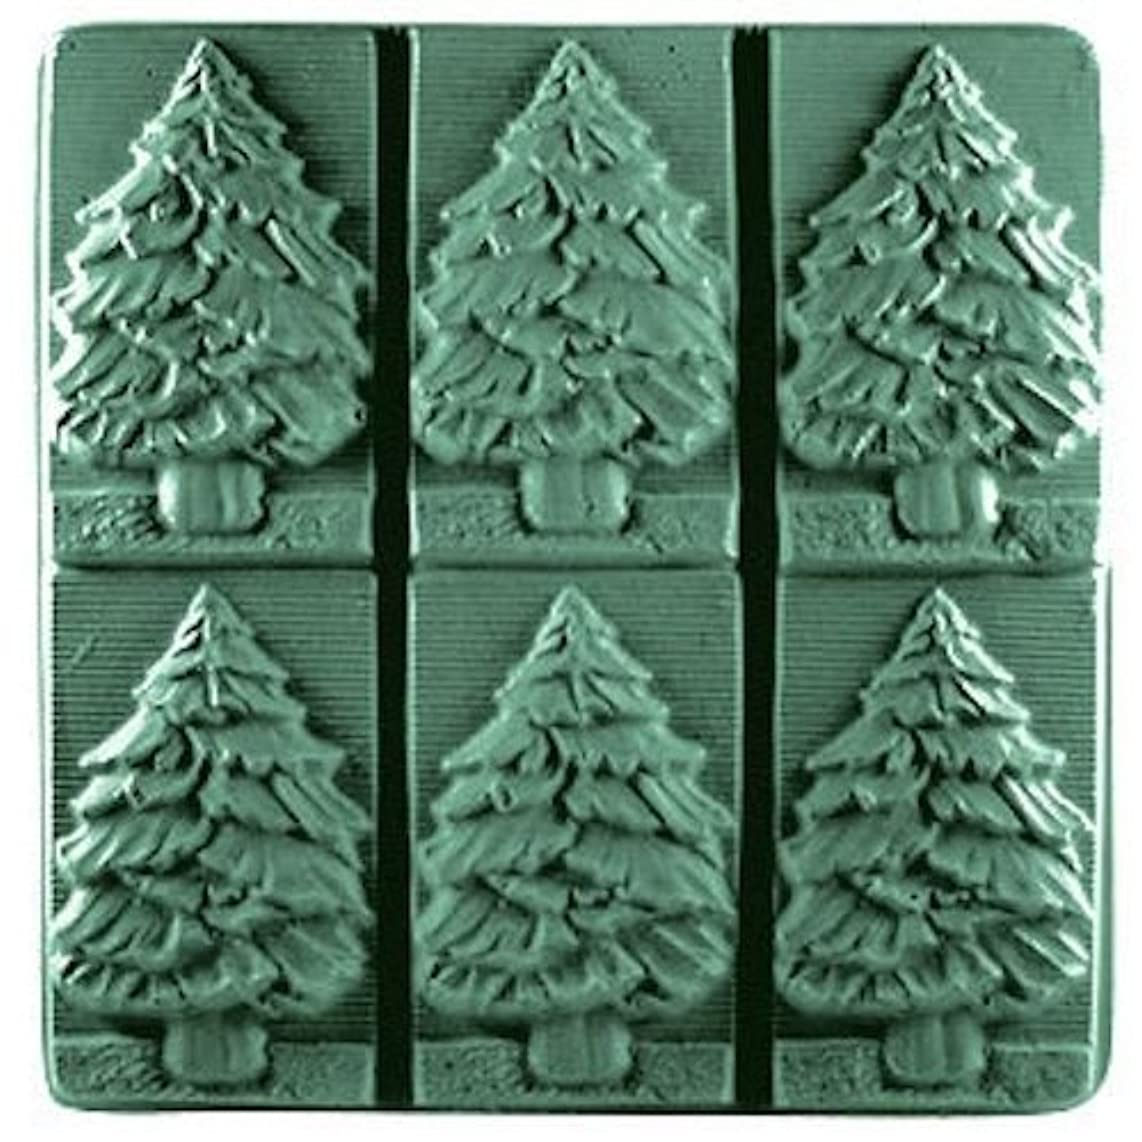 Fir Tree Milky Way Soap Mold - Melt and Pour - Cold Process - Clear PVC - Not Silicone - MW 96